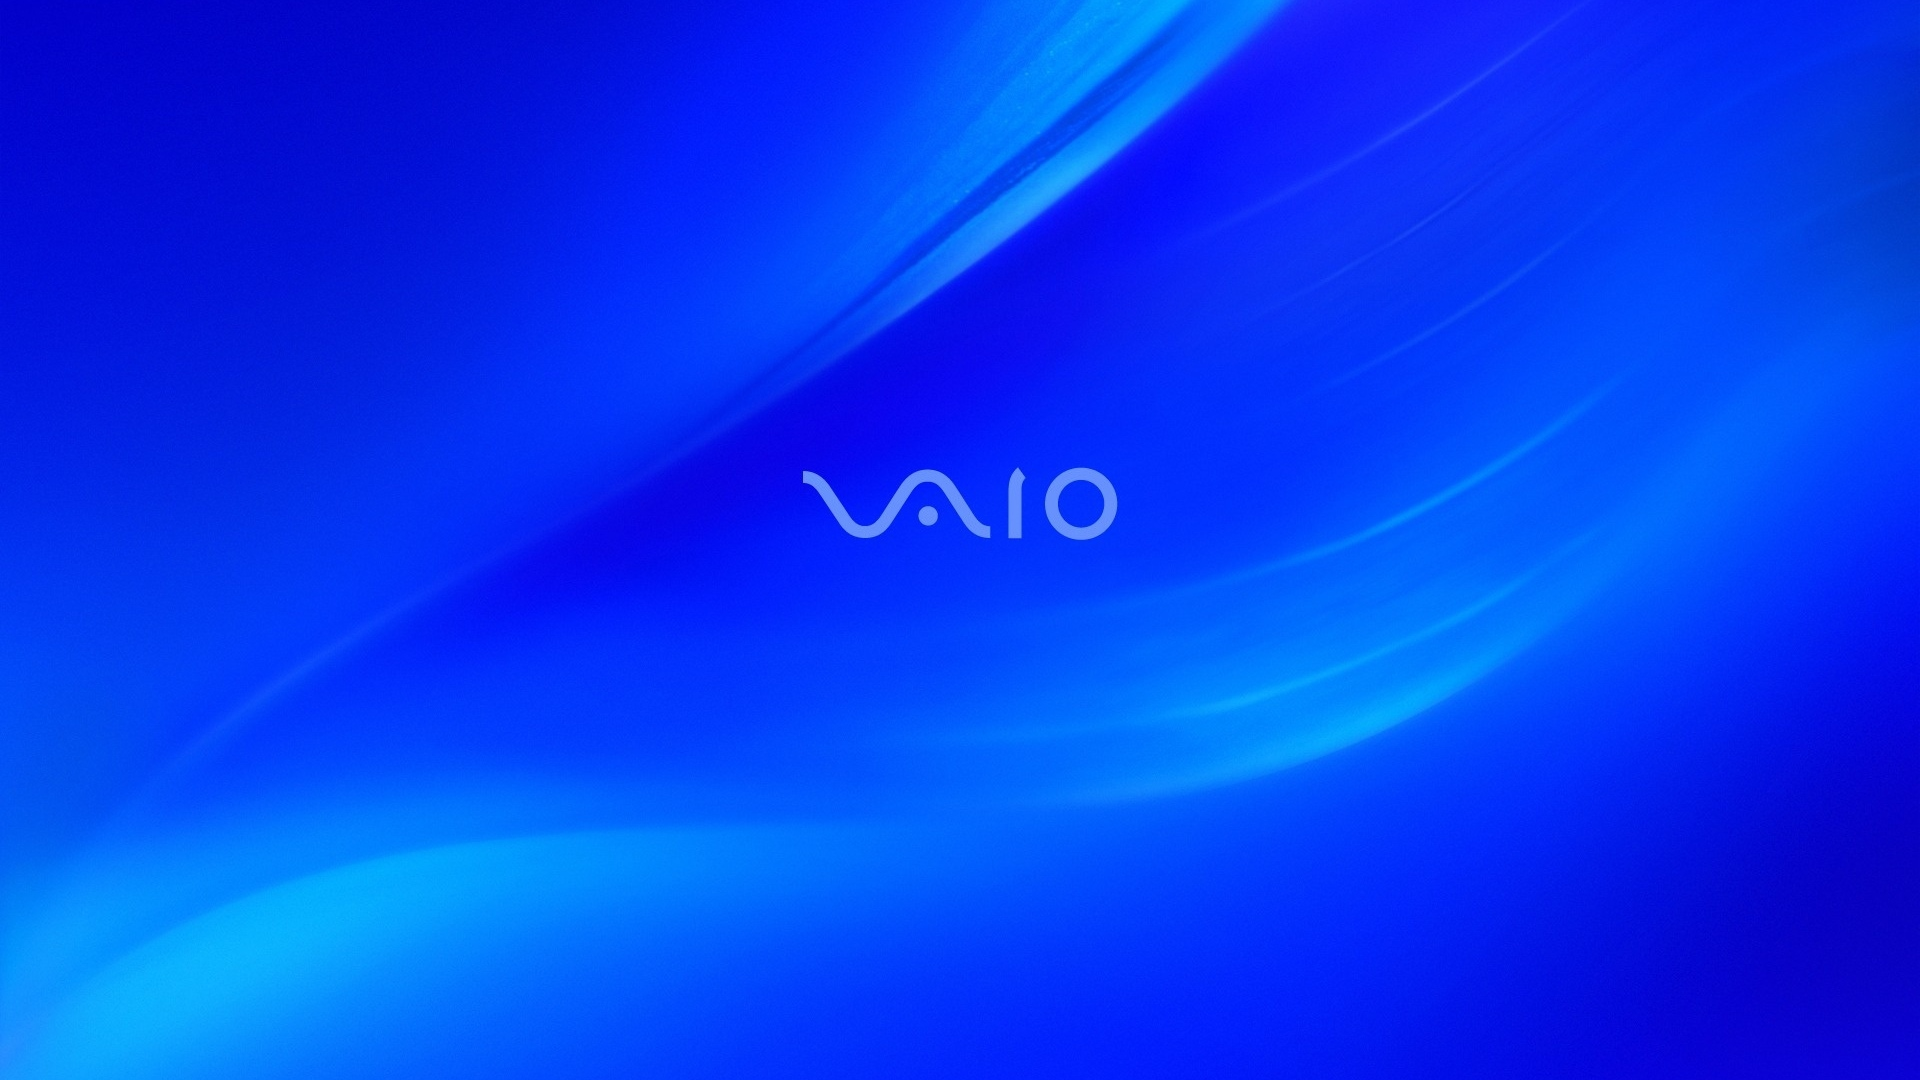 Download Wallpaper 1920x1080 Logo Samsung Vaio Full HD 1080p HD 1920x1080